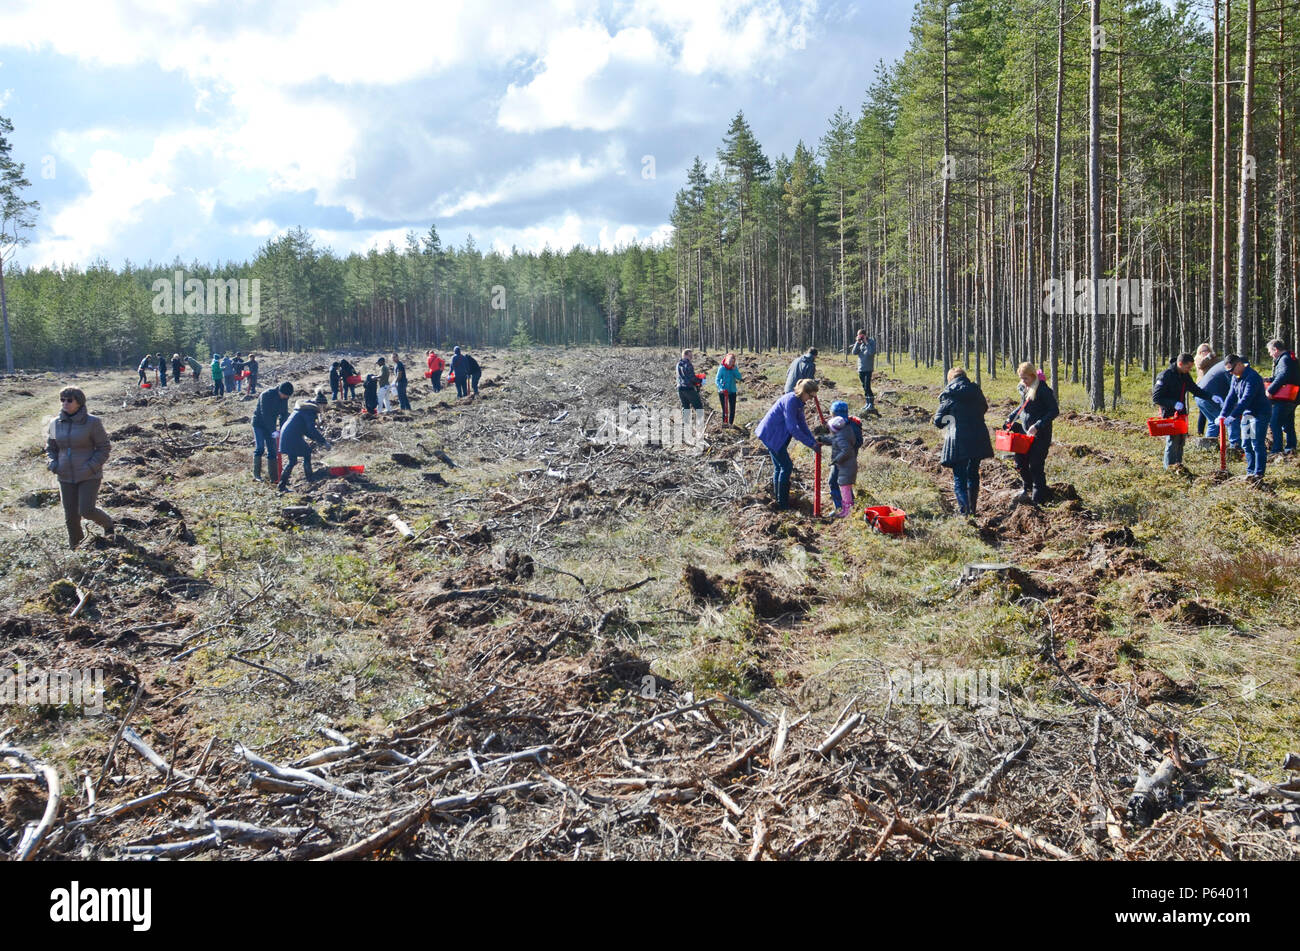 Volunteers spread across a field to plant trees during a tree planting ceremony in Kuusalu, Estonia, April 22, 2016. (Photo by U.S. Army Staff Sgt. Steven M. Colvin/Released) - Stock Image